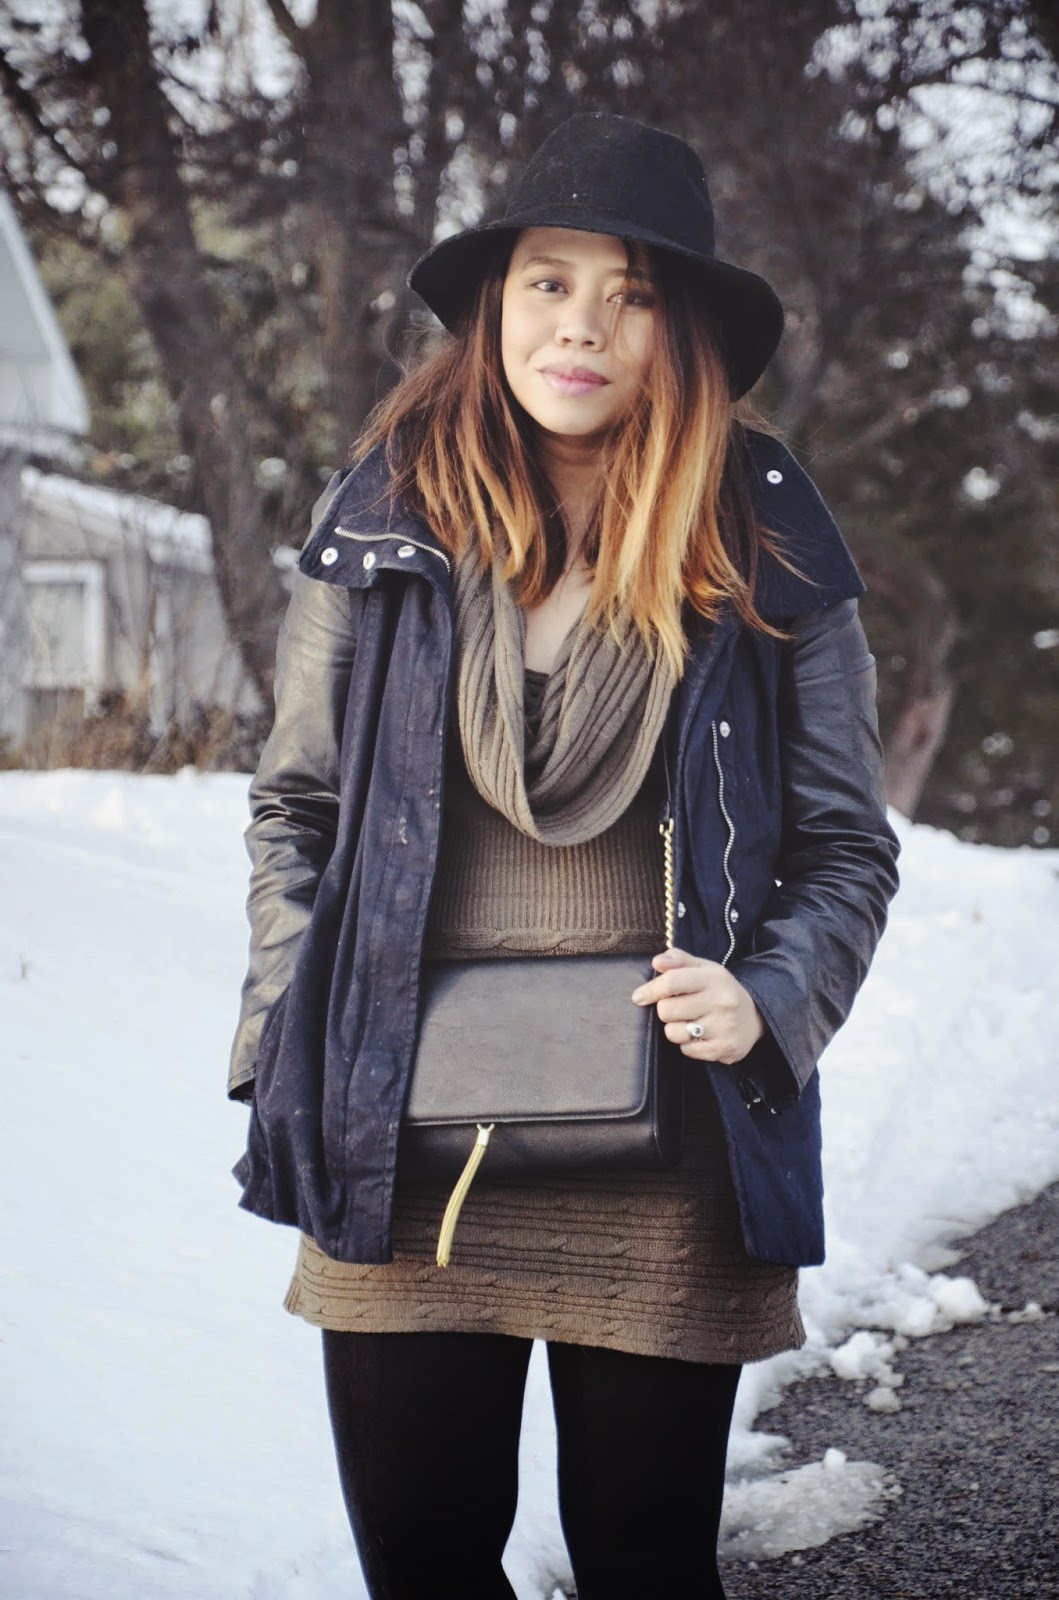 michigan fashion blogger, midwest fashion blogger, chic in the tropics, sweater dress, leather sleeved parka